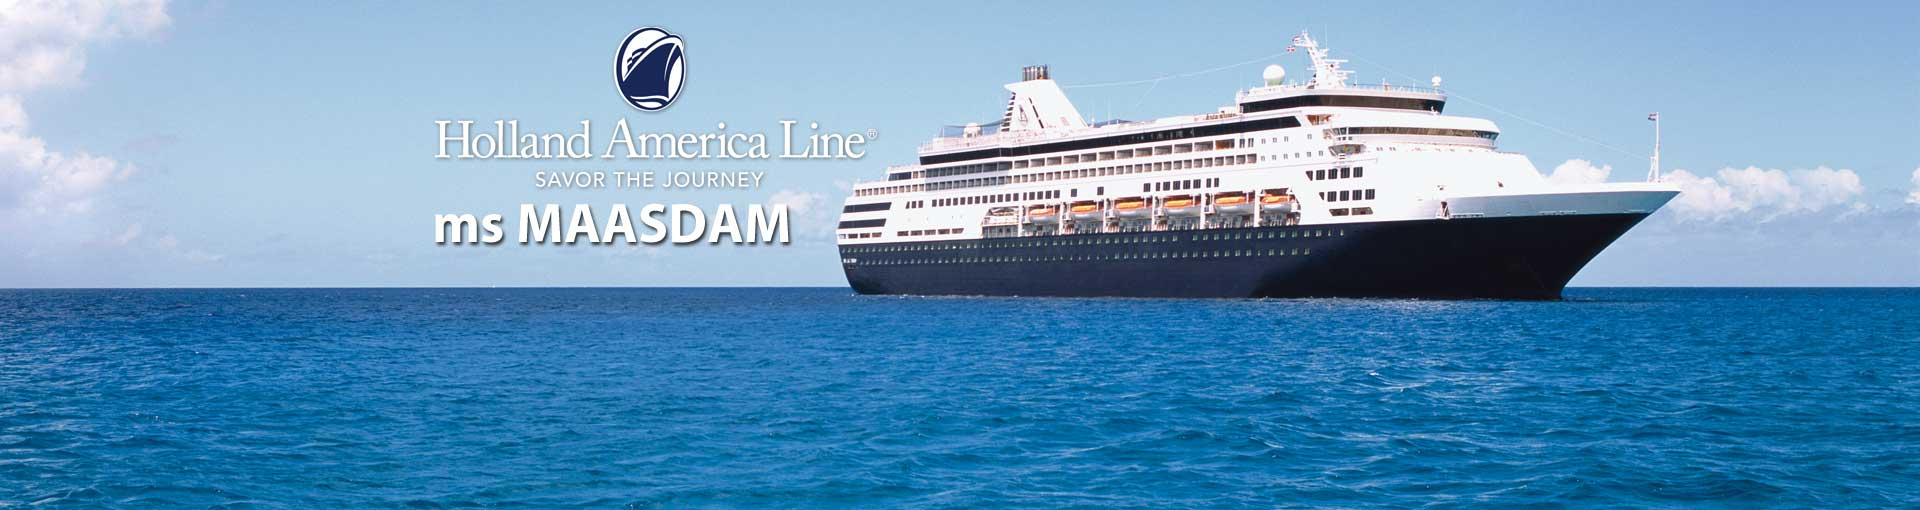 Holland America ms Maasdam cruise ship